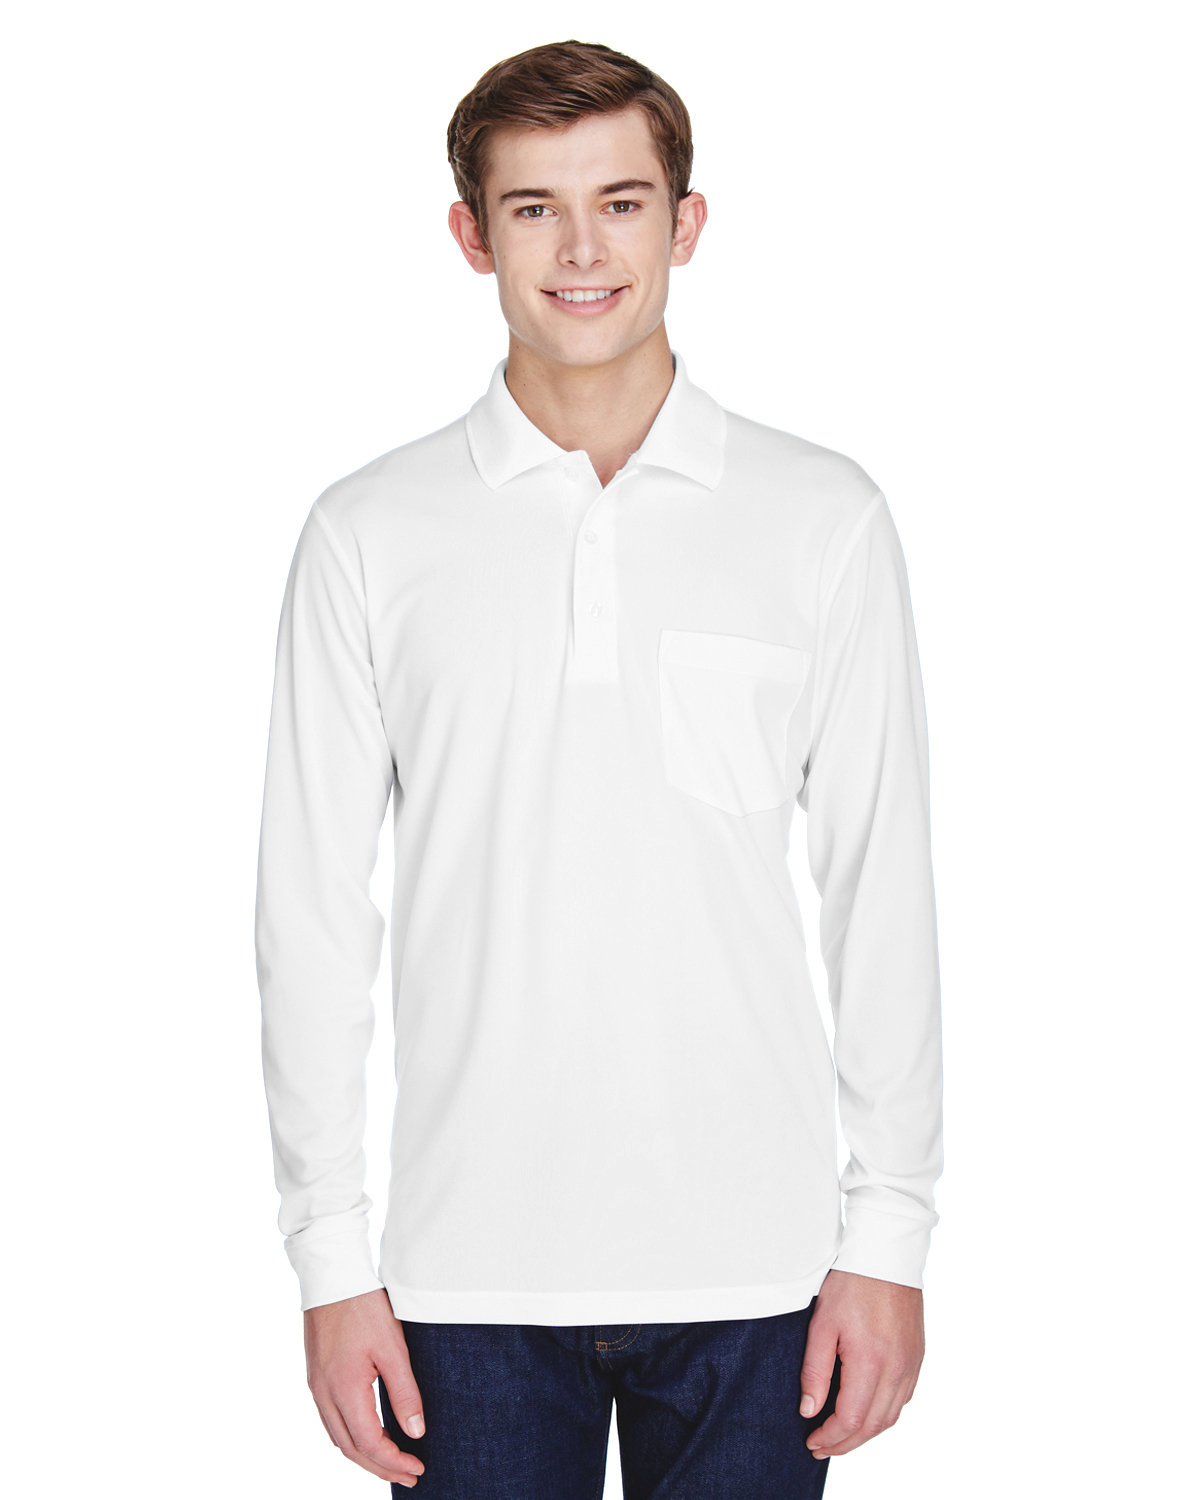 Core 365 Adult Pinnacle Performance Long-Sleeve Piqué Polo with Pocket WHITE